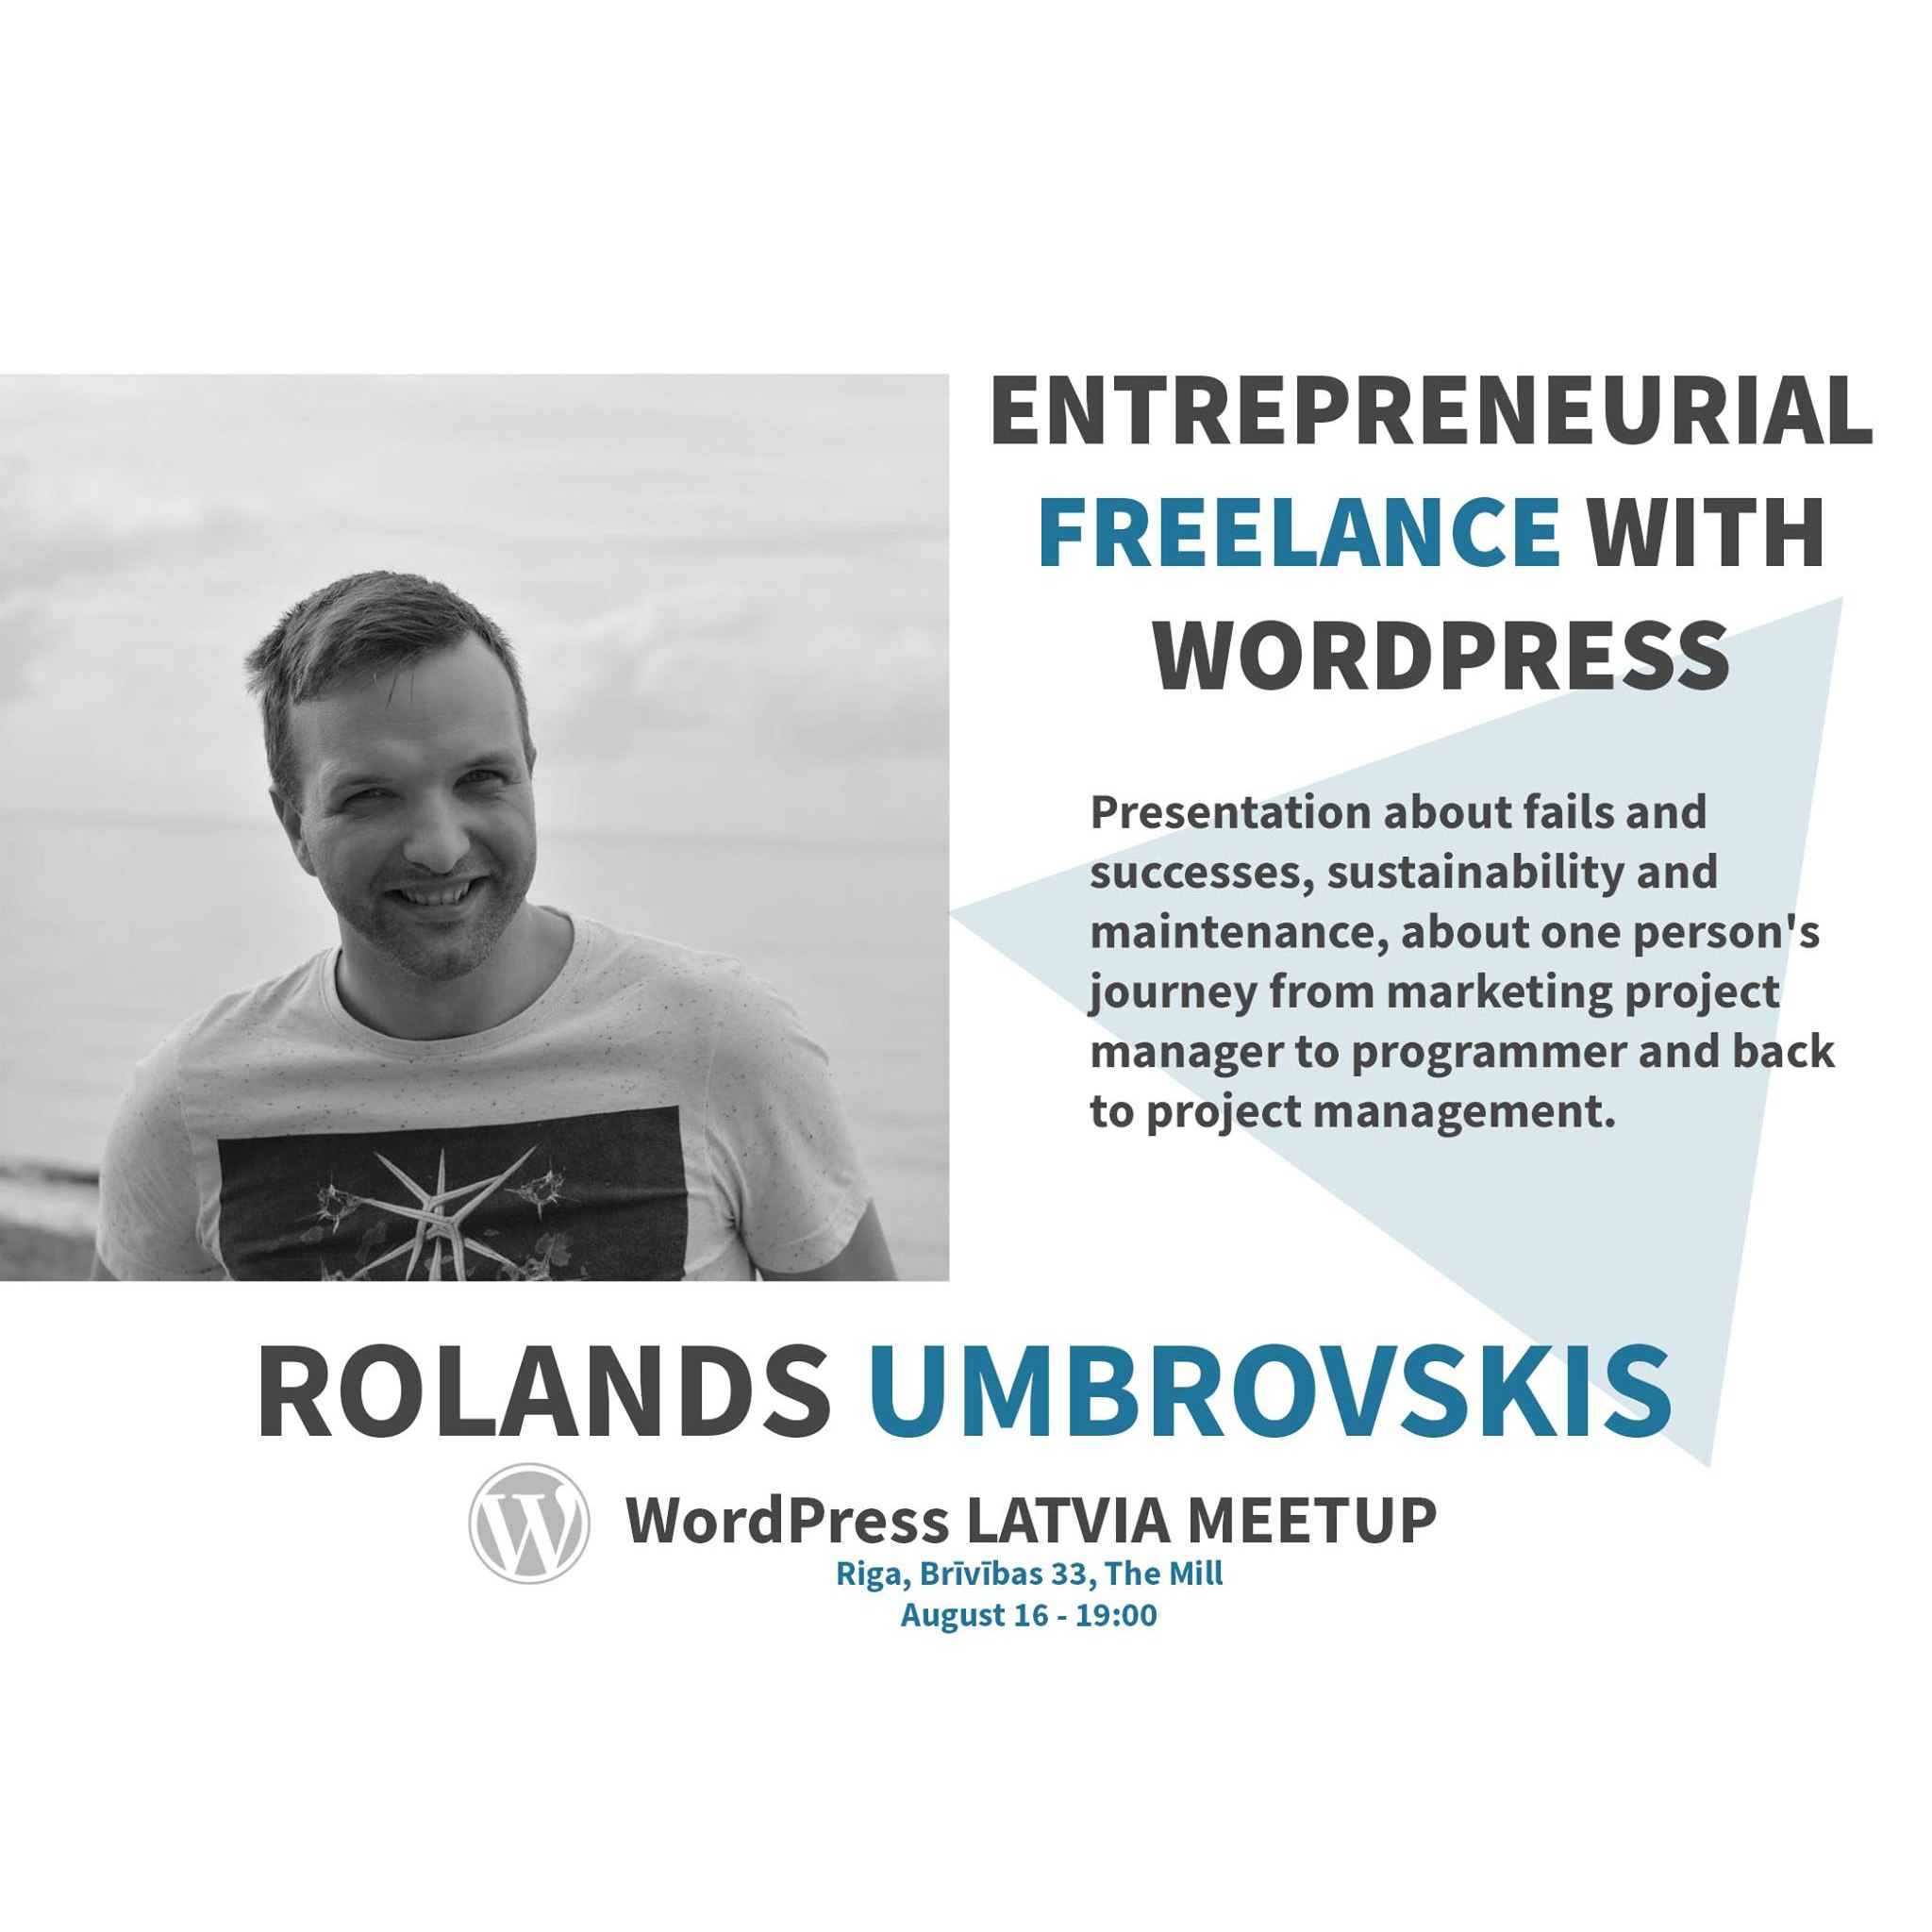 Entrepreneurial freelance with WordPress